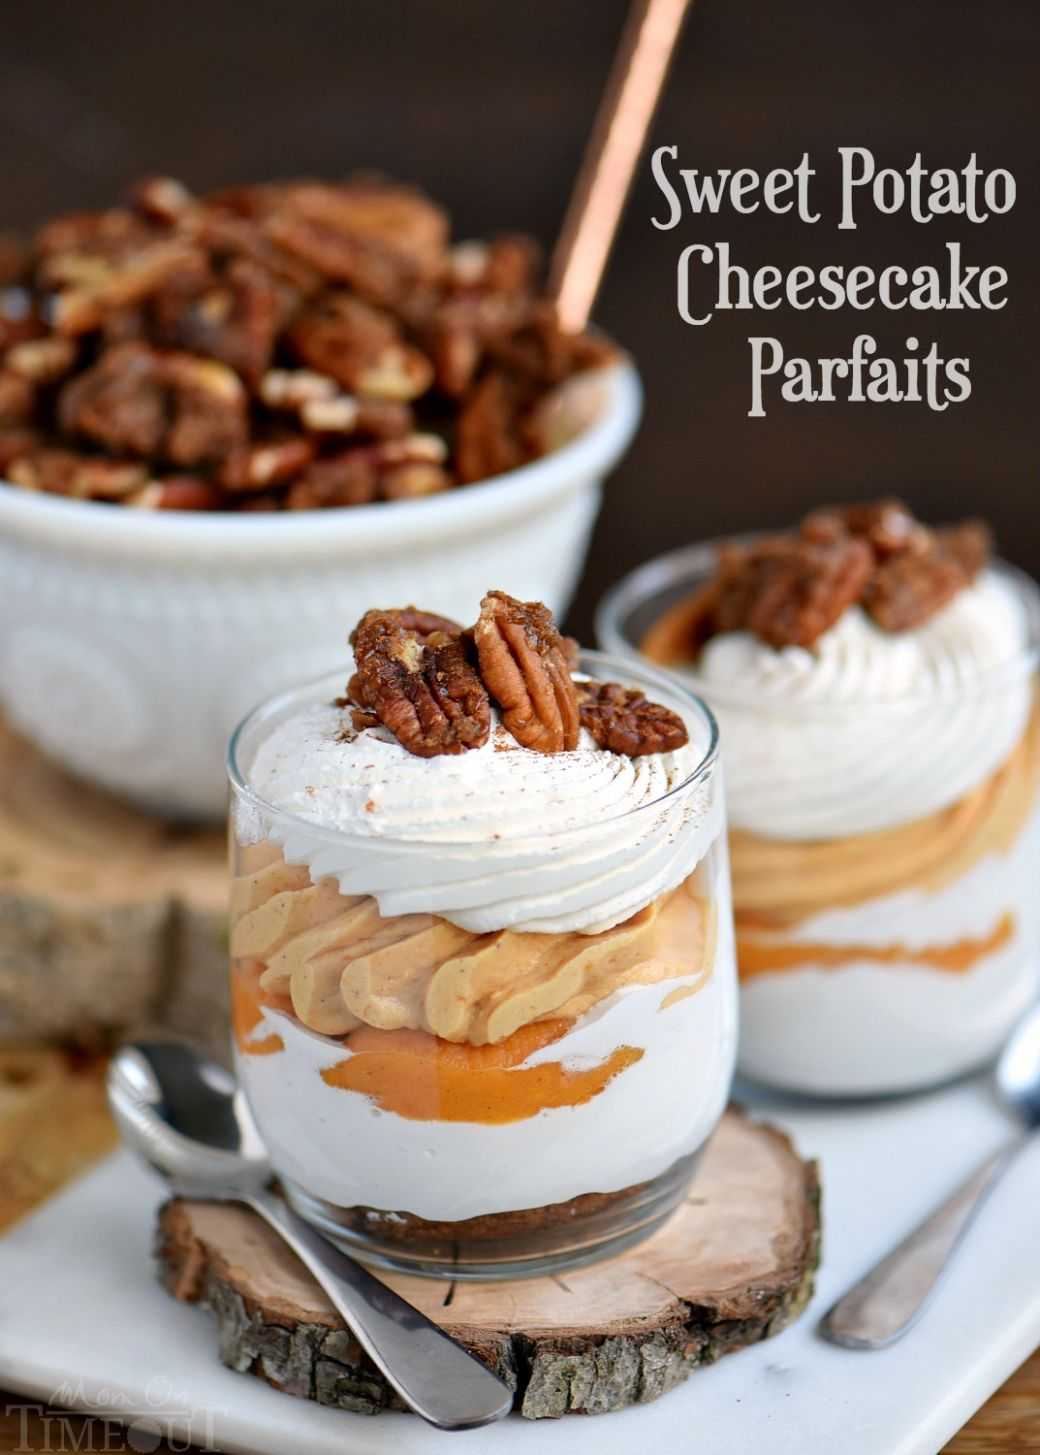 Sweet Potato Cheesecake Parfaits - Food Recipes Sweet